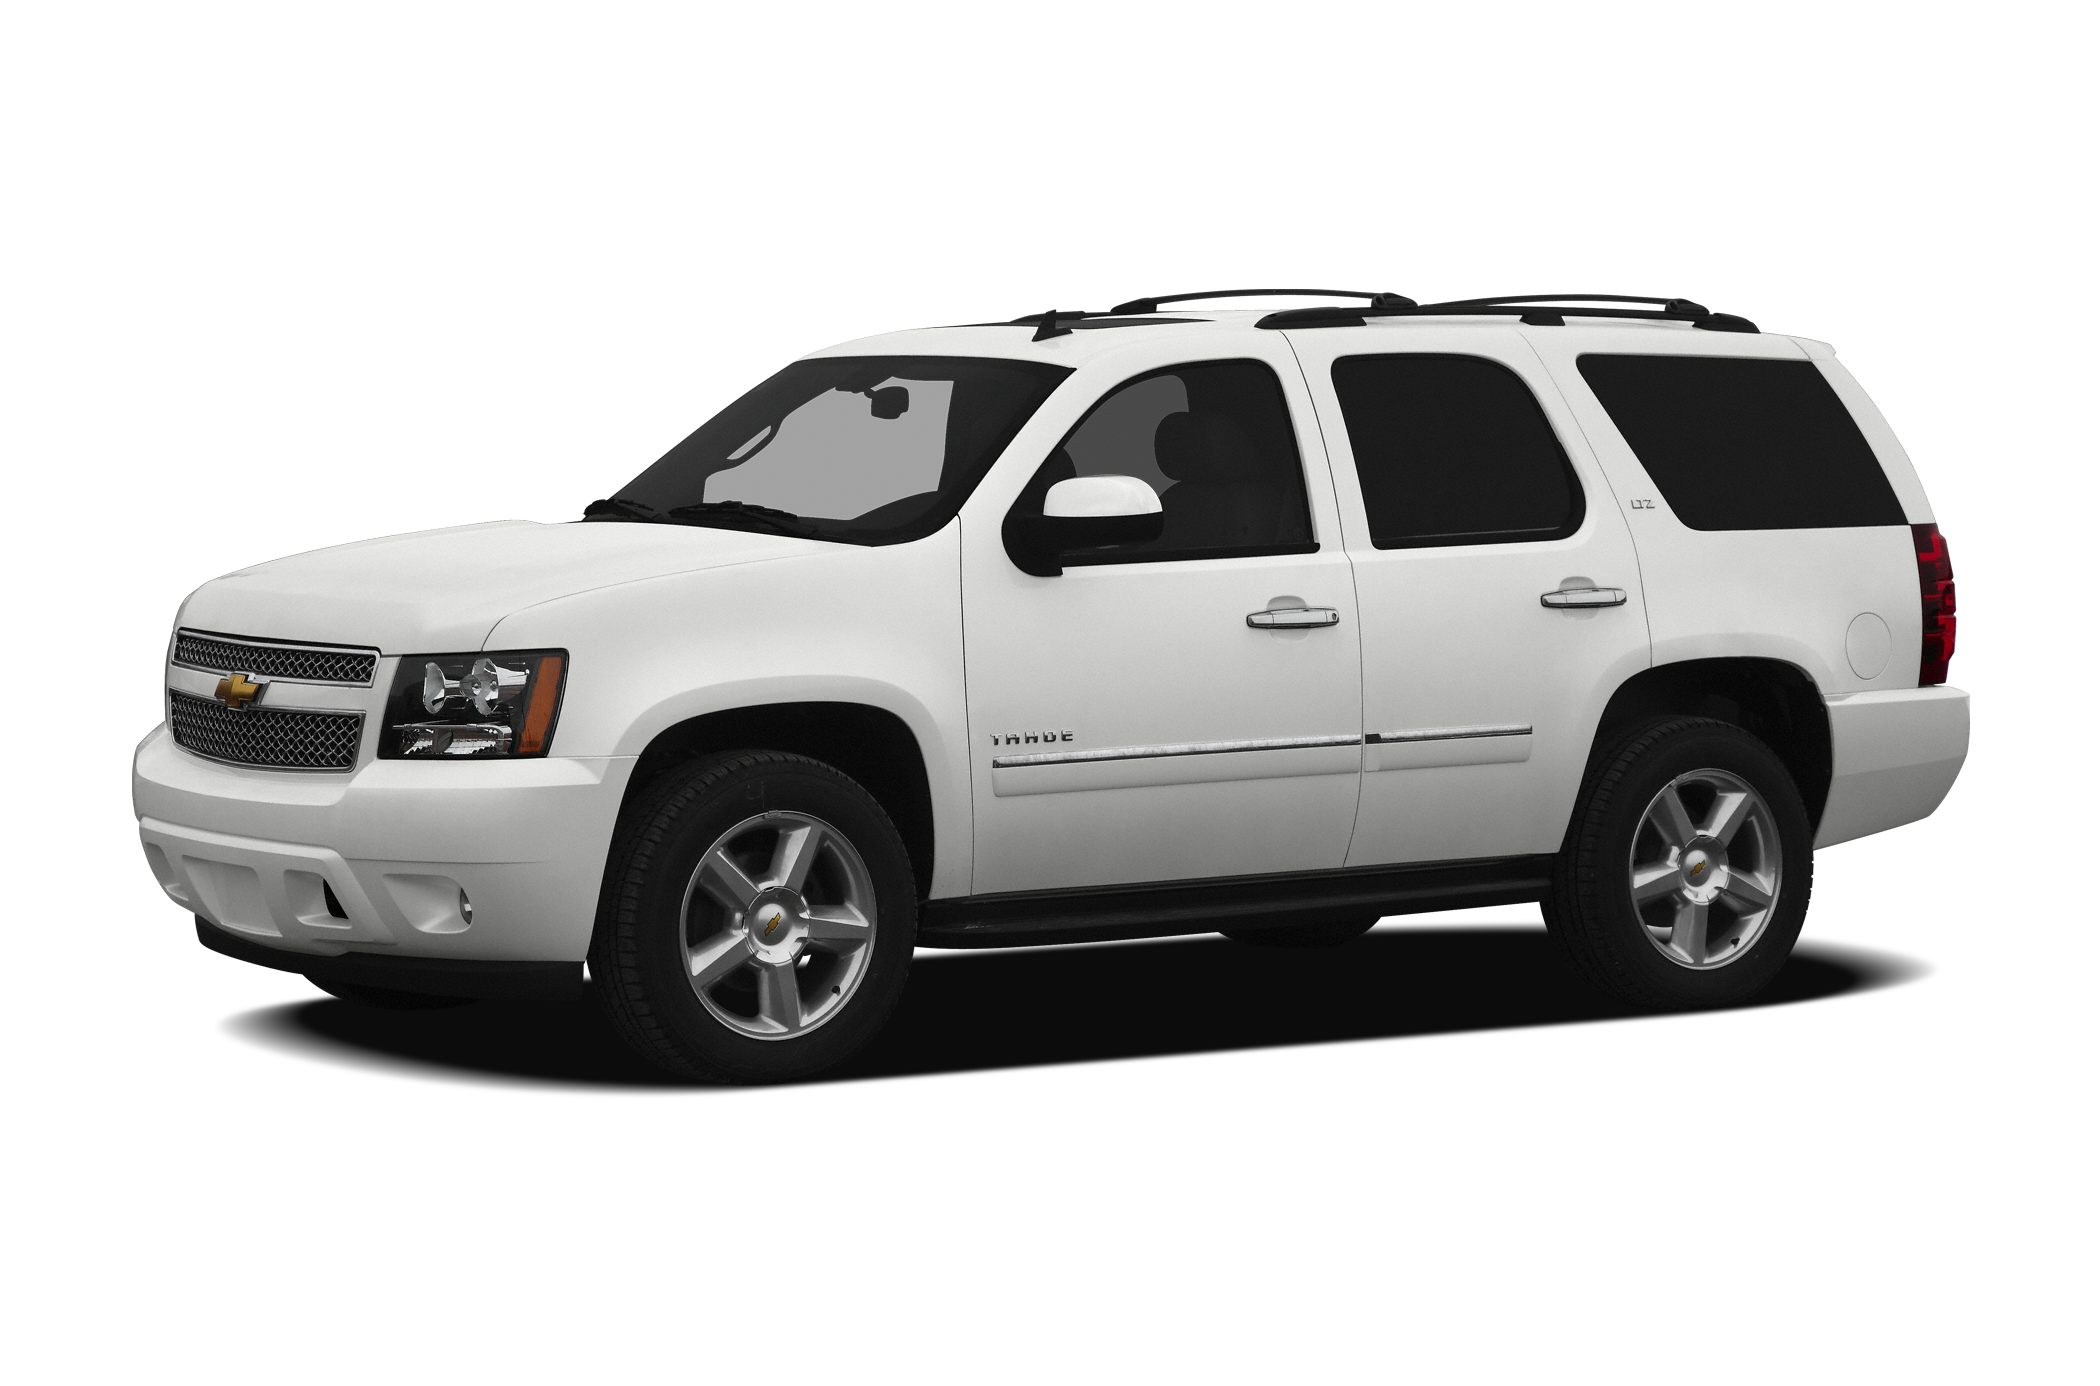 2012 Chevrolet Tahoe LT SUV for sale in Lafayette for $19,995 with 99,913 miles